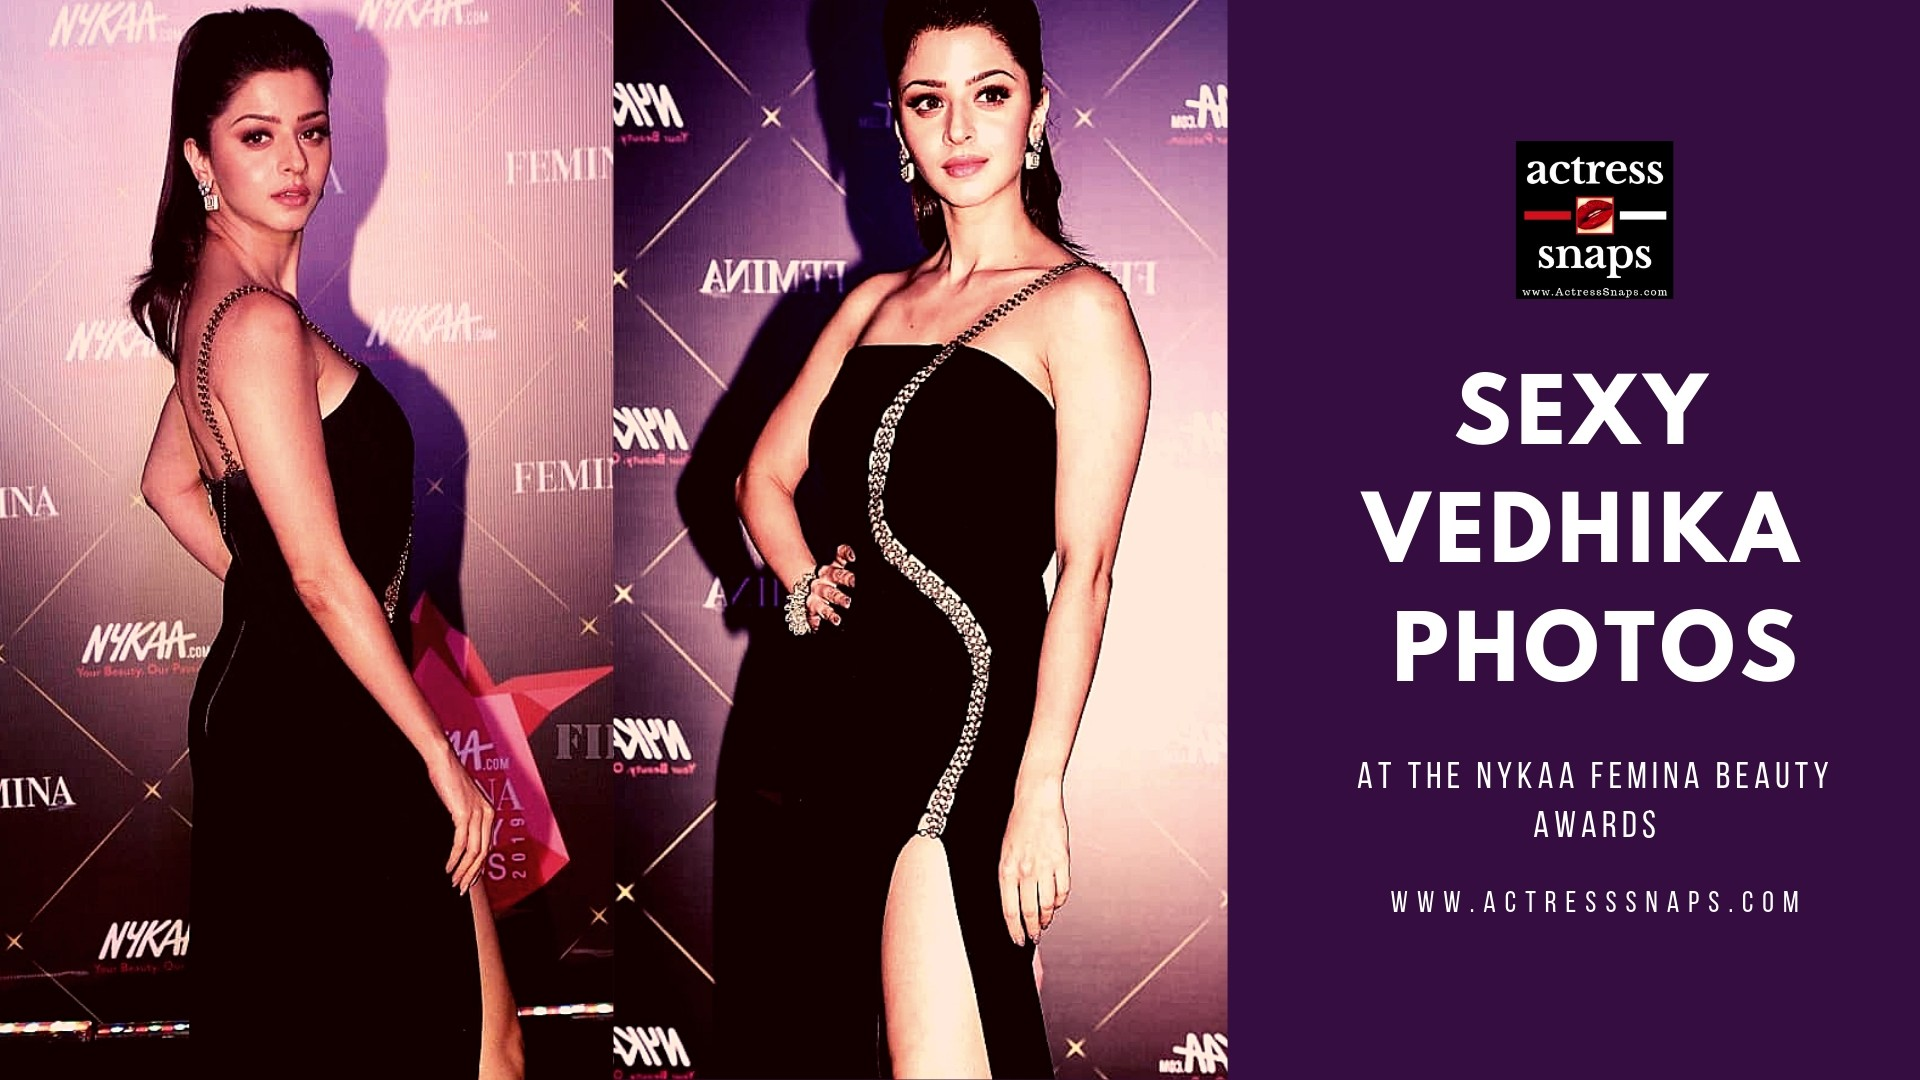 Vedhika Photos from Nyka Femina Awards - Sexy Actress Pictures | Hot Actress Pictures - ActressSnaps.com